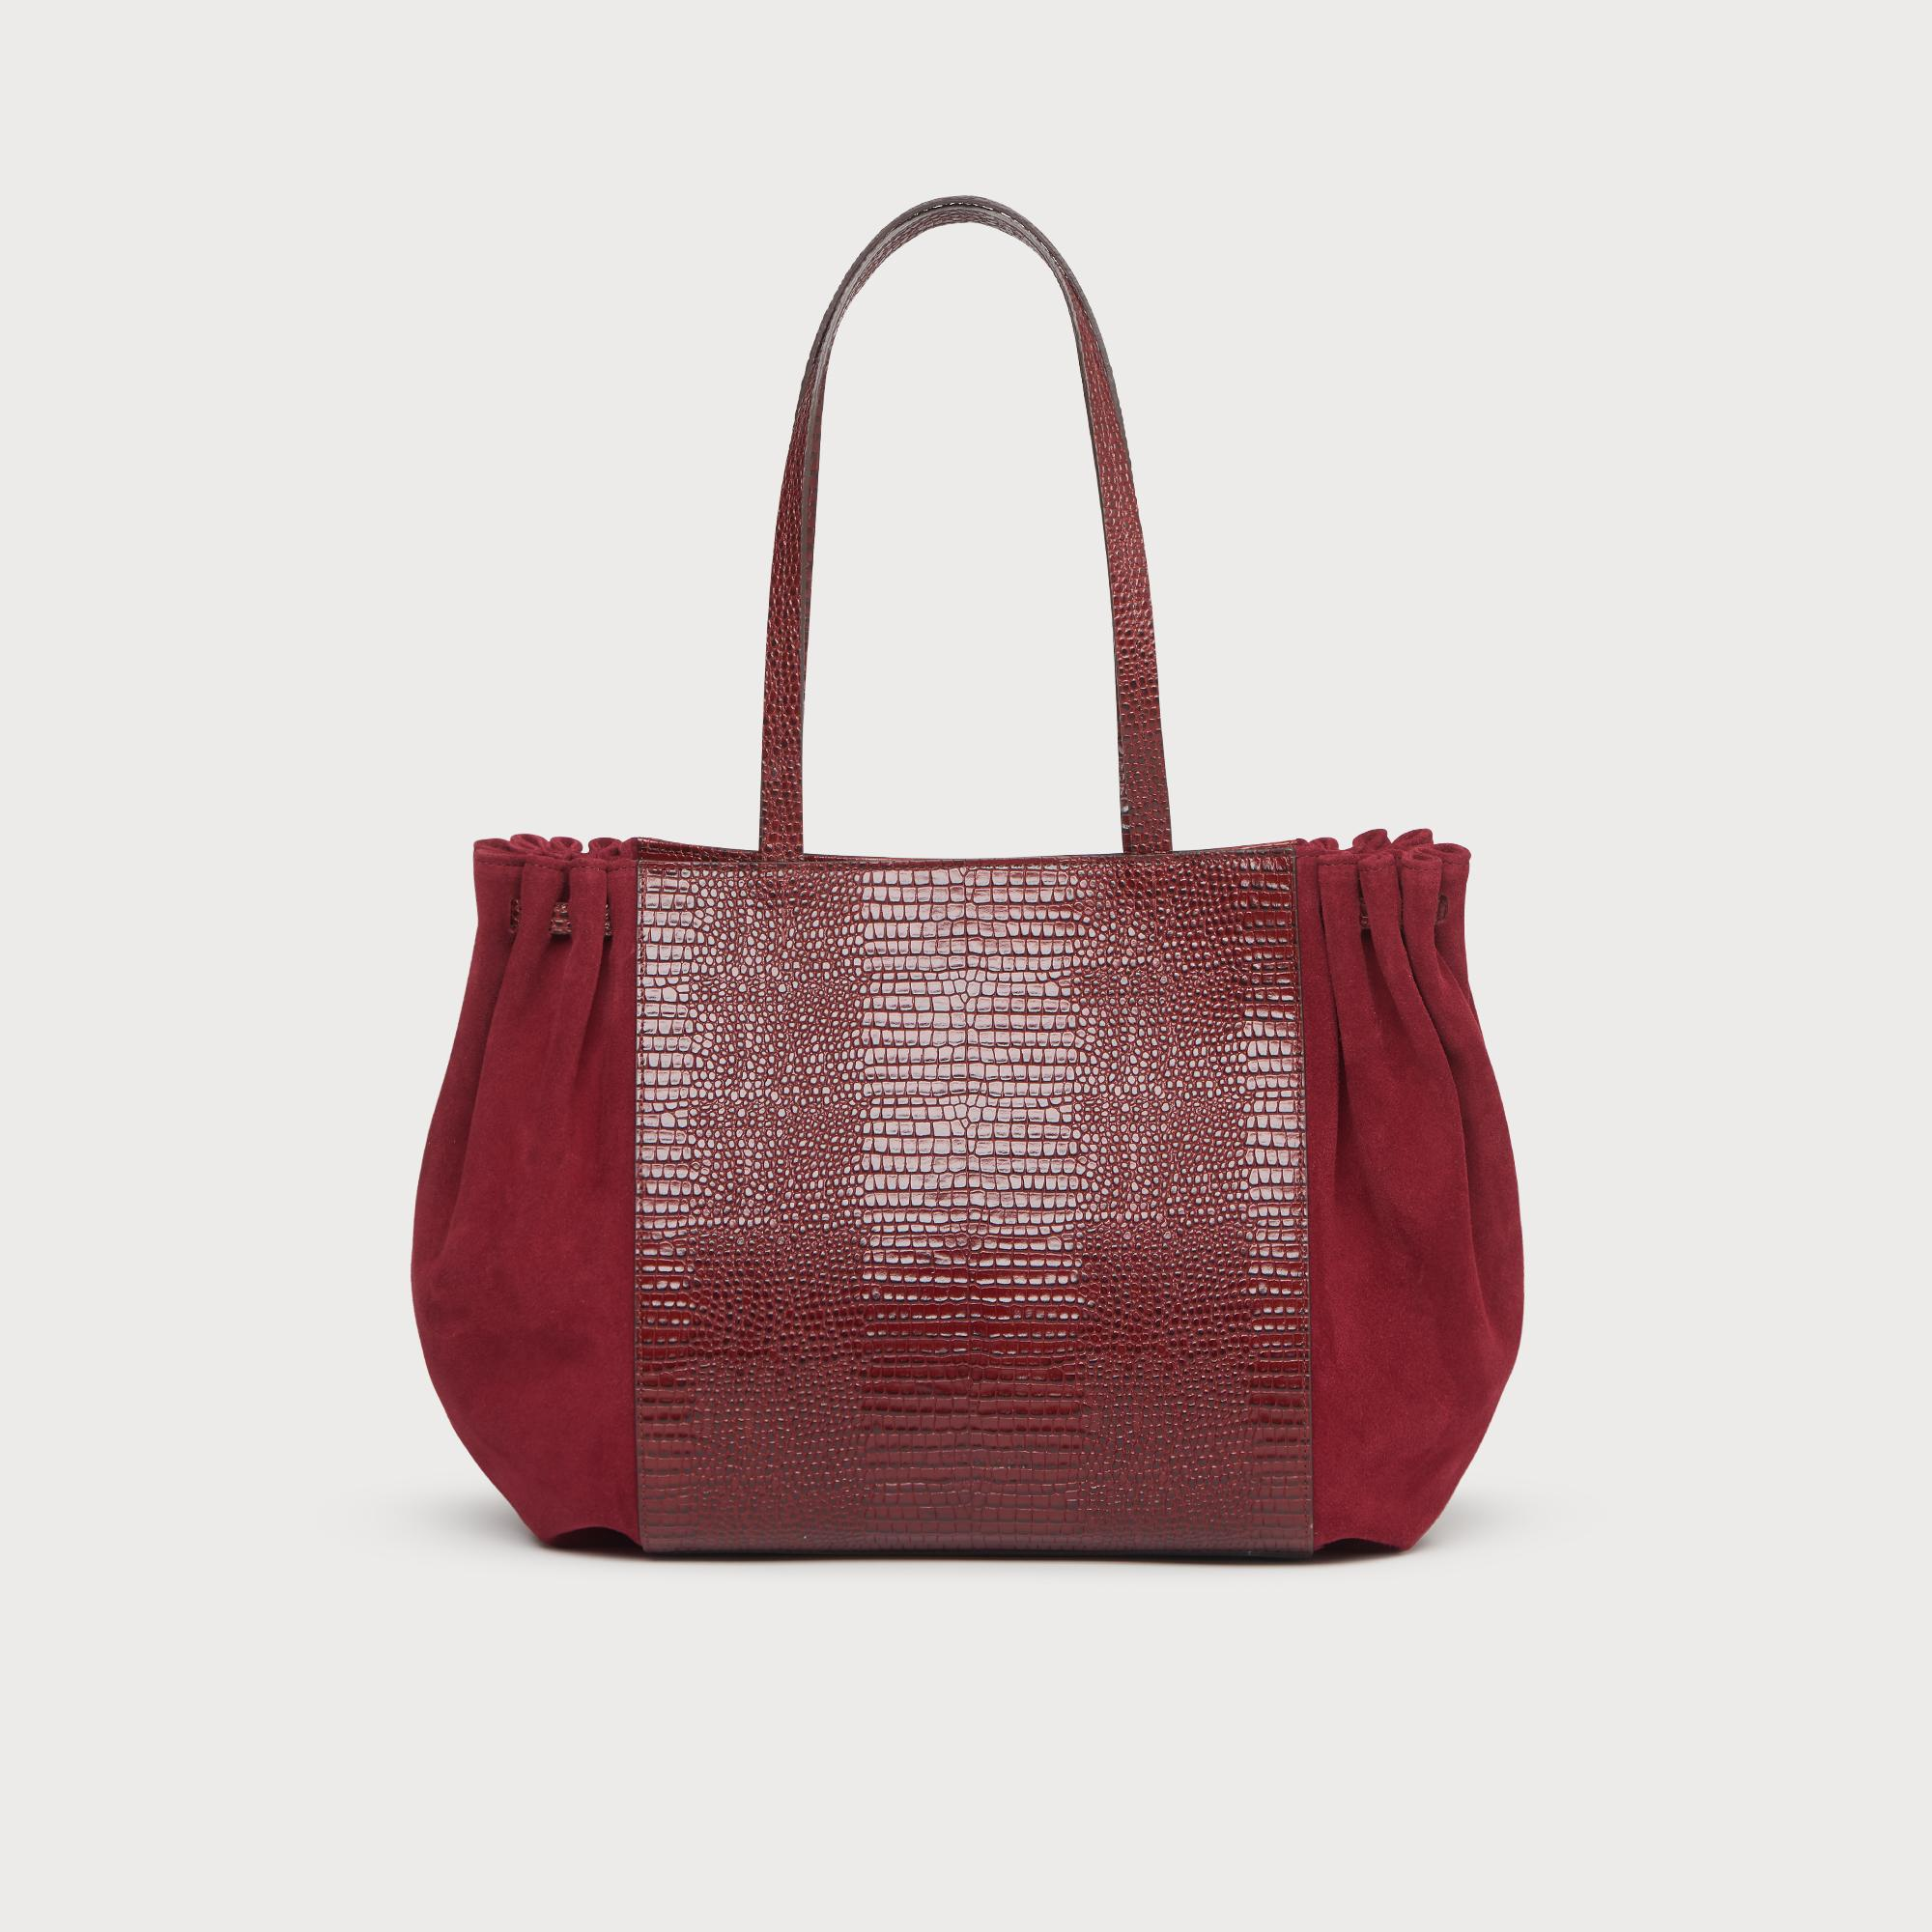 burgundy tote bags uk